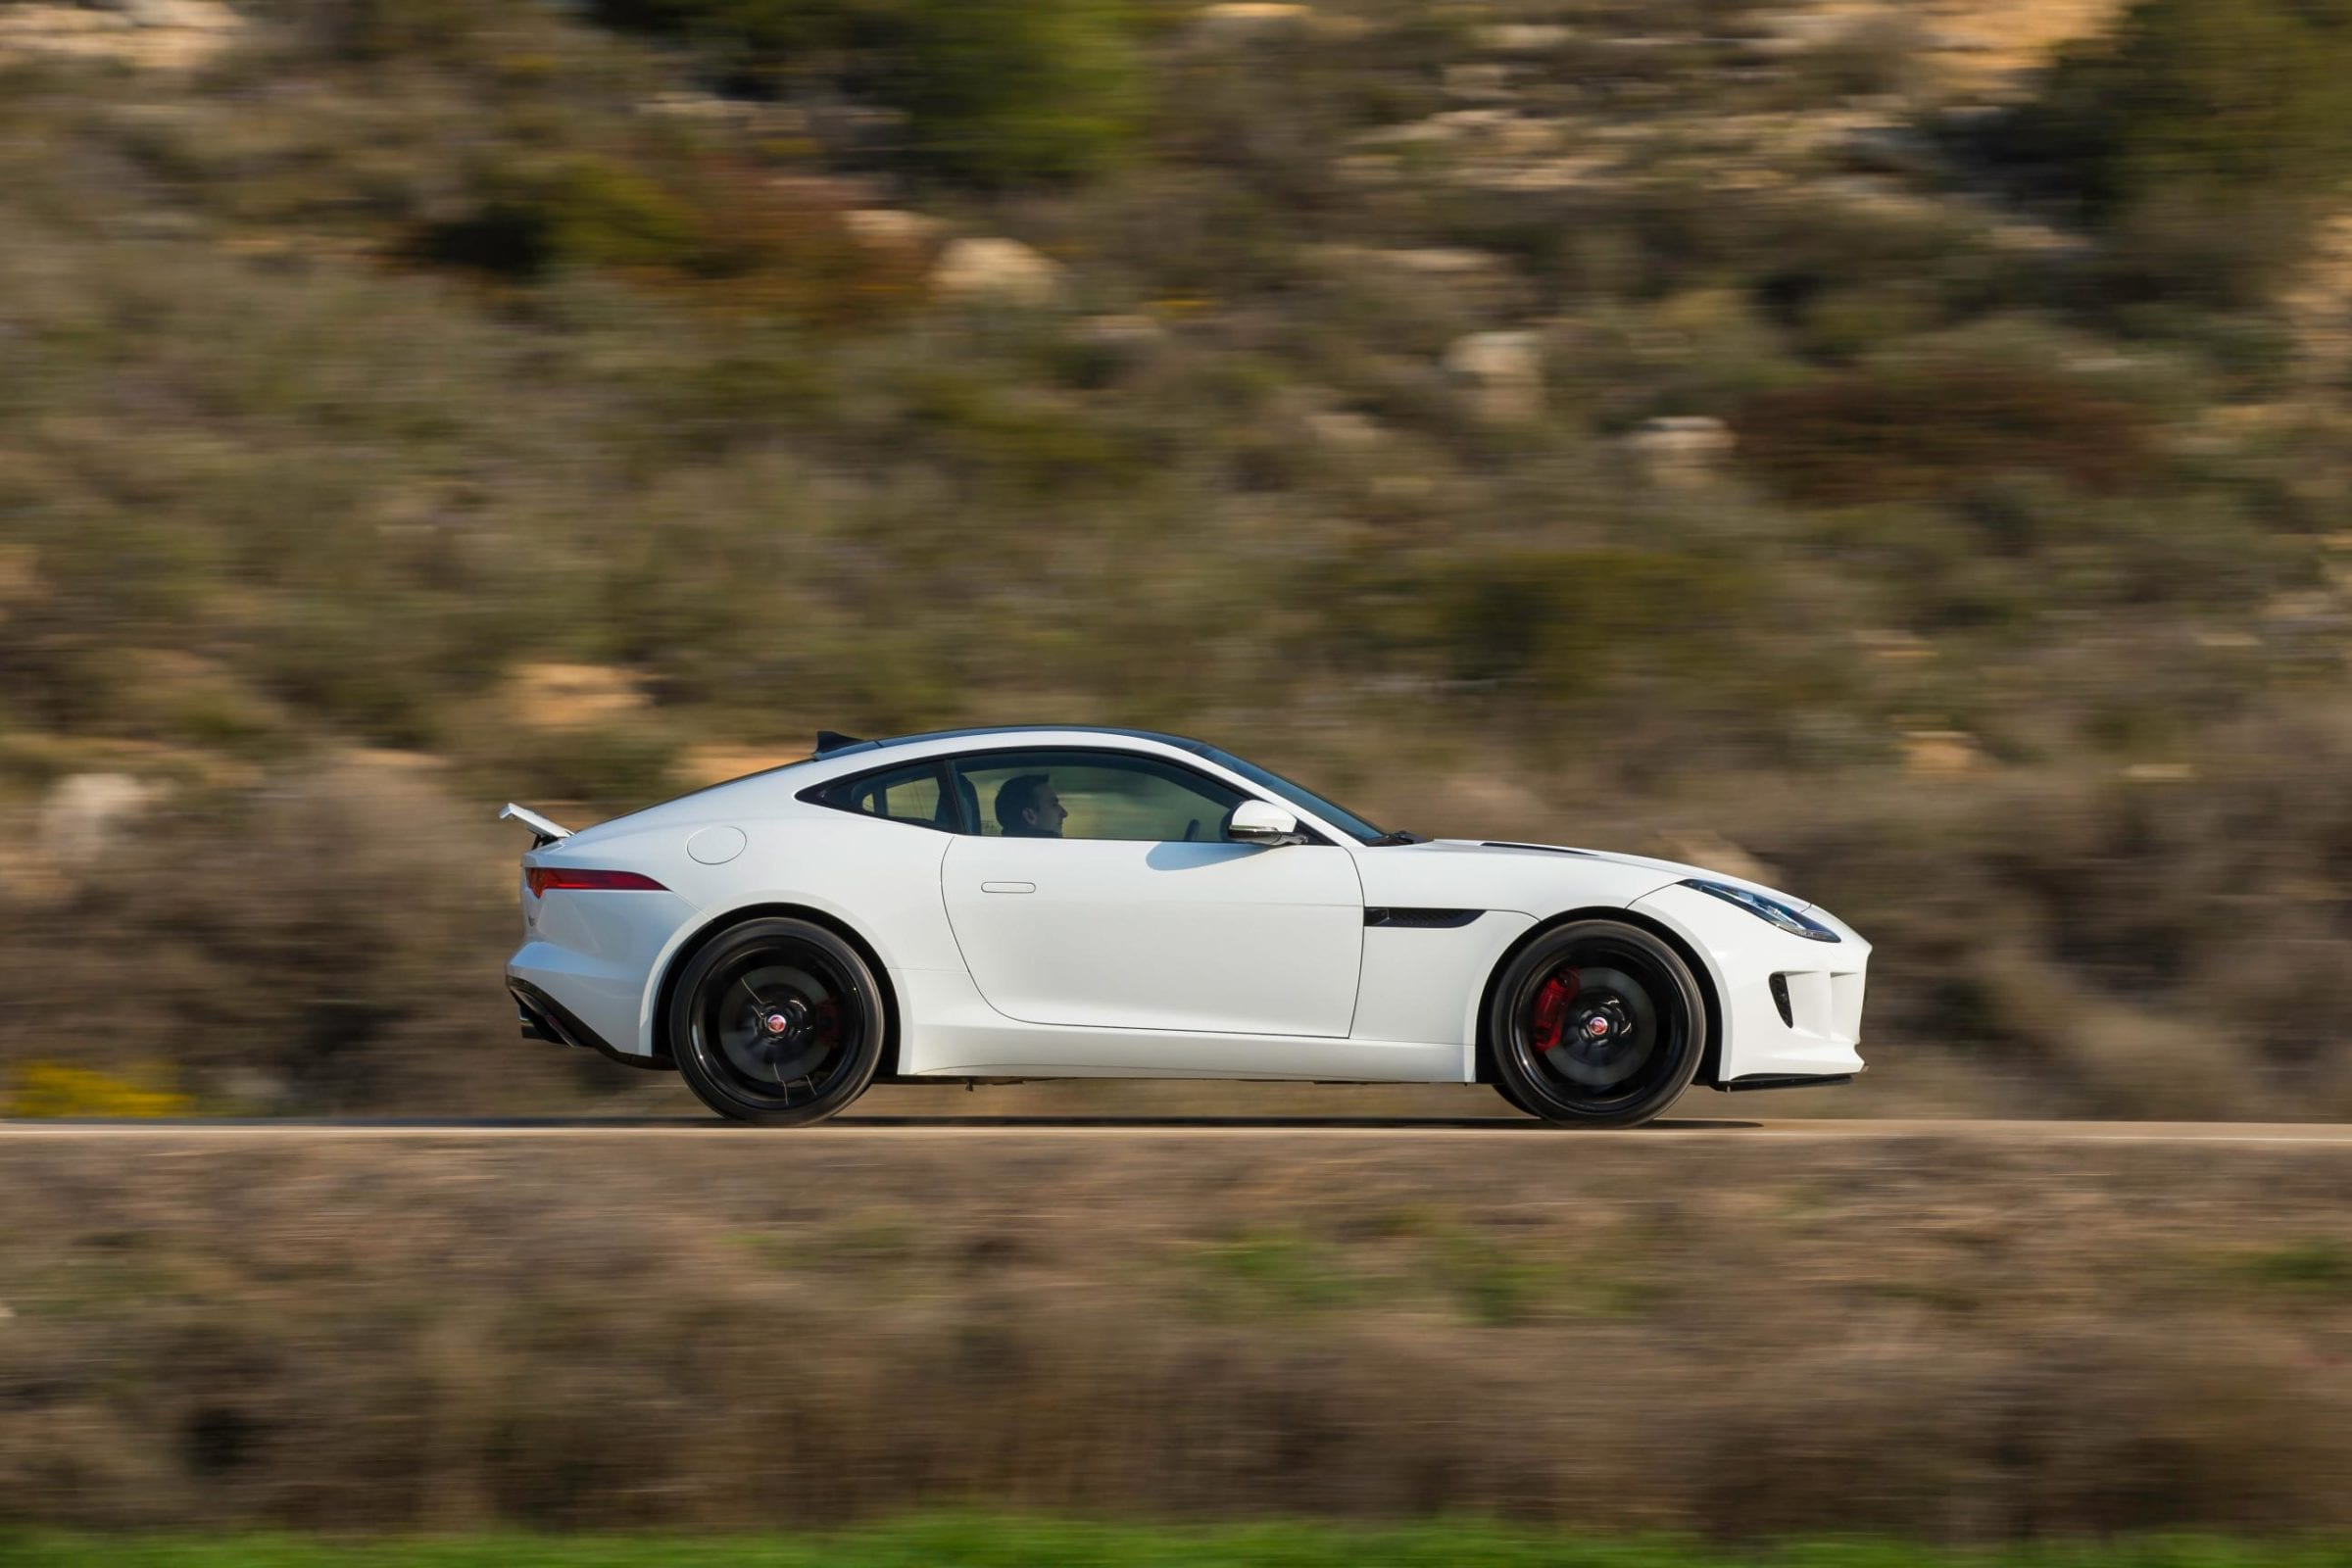 834009_JAG_F-TYPE_V6S_Polaris_White_004